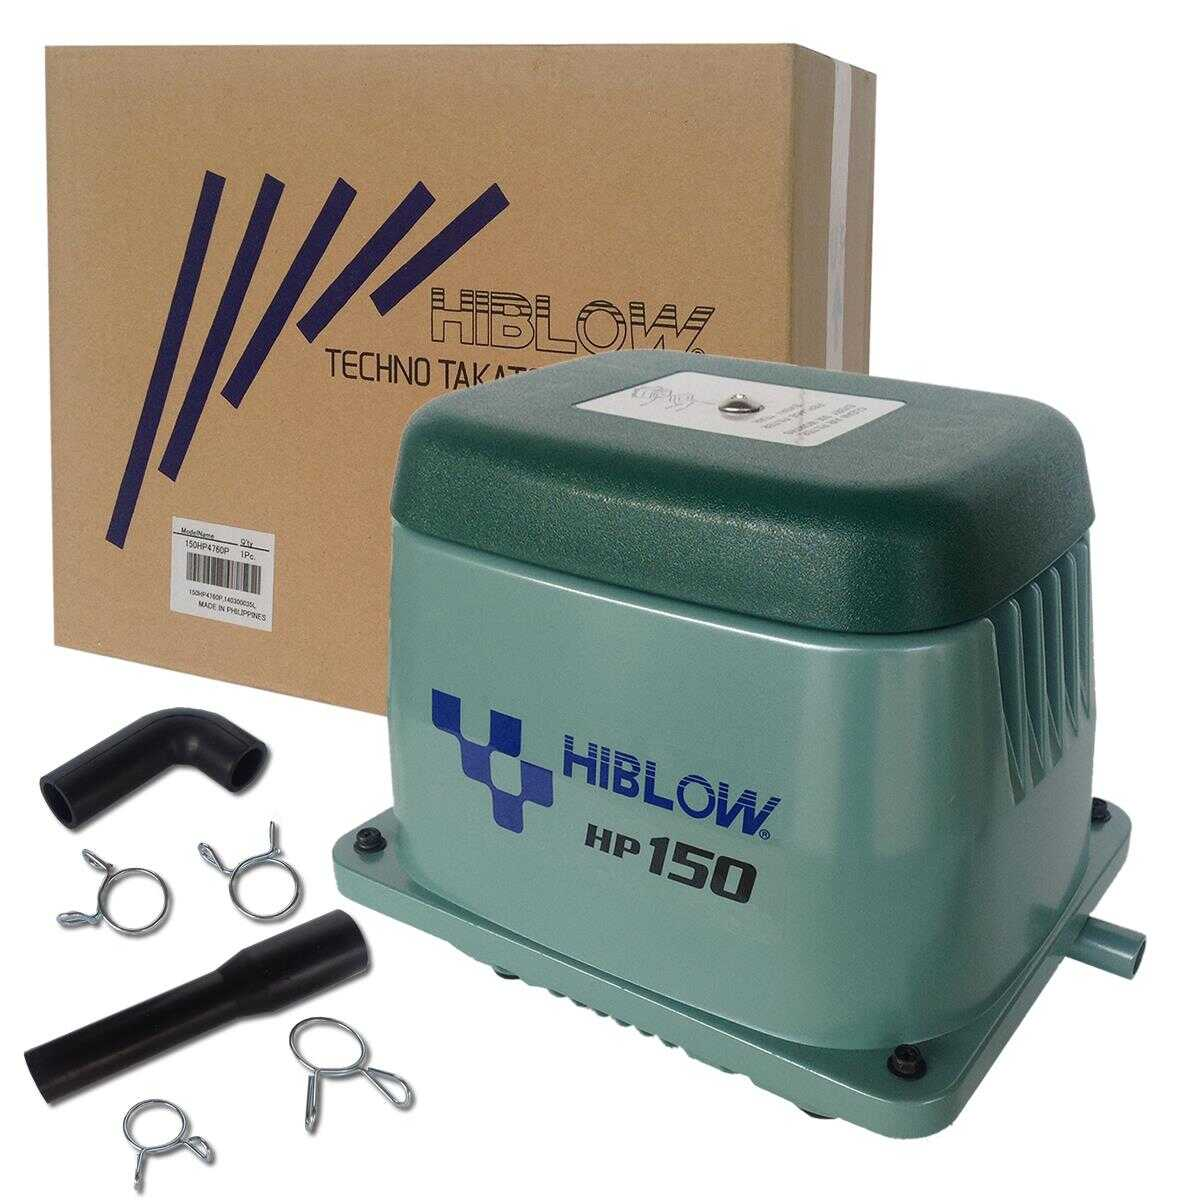 Hiblow HP 150 Orginal